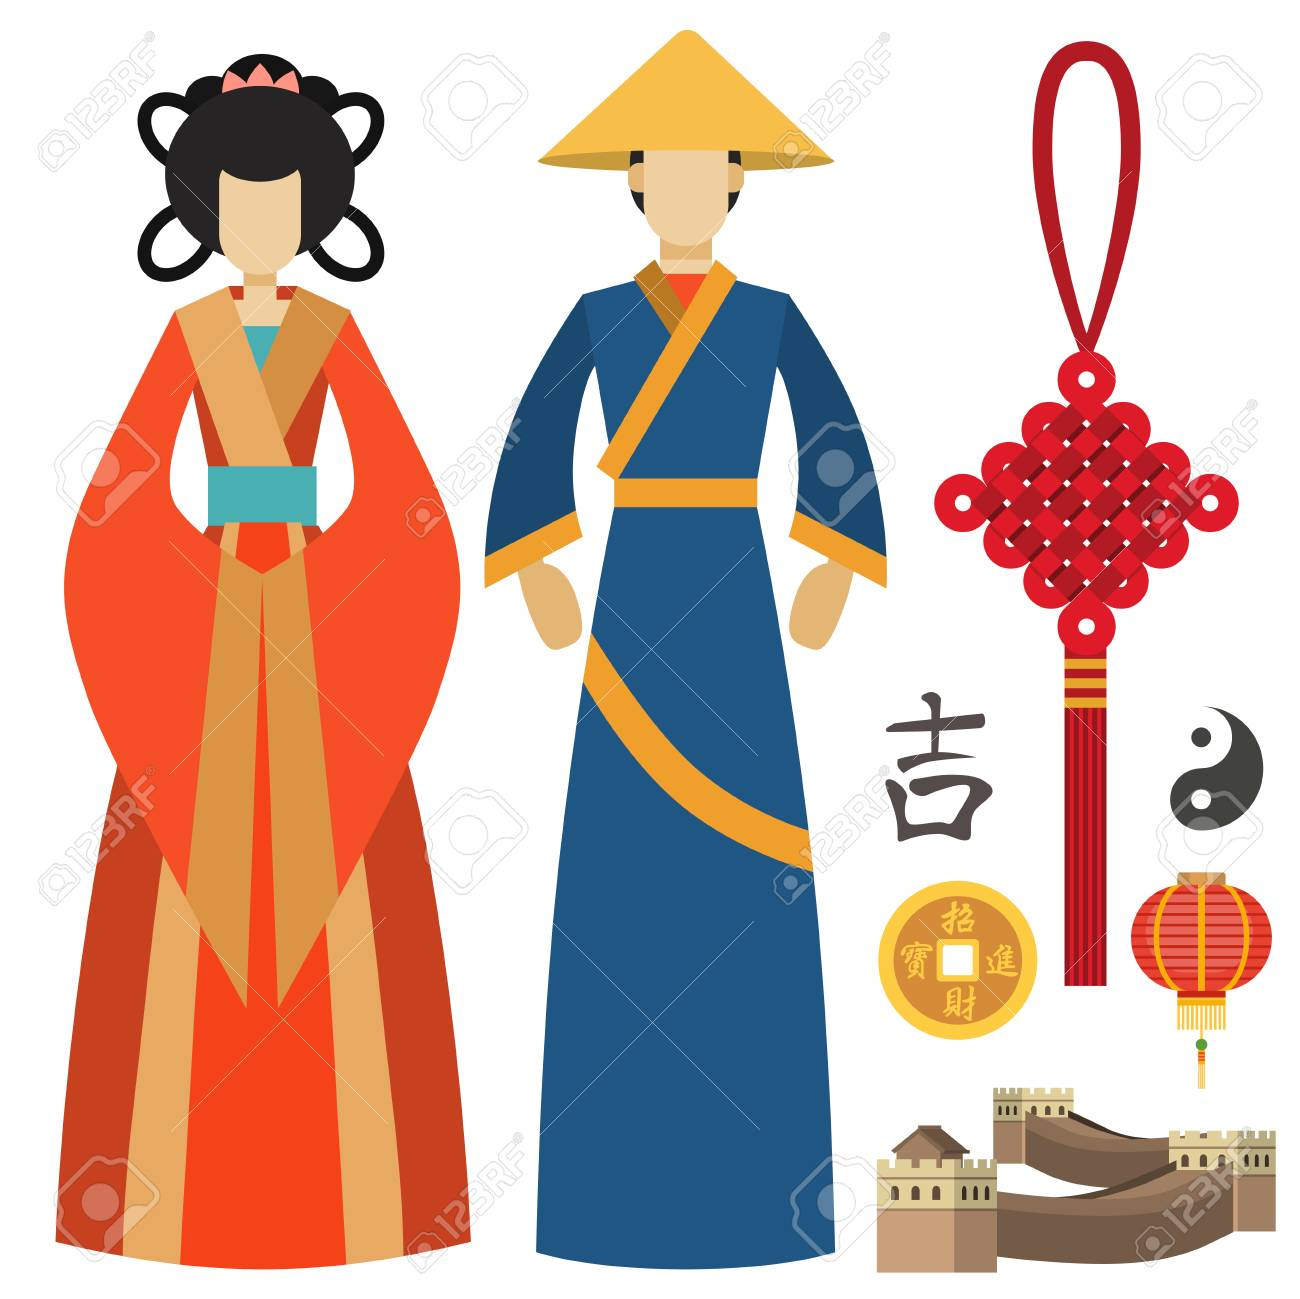 China man and woman east culture chinese traditional symbols...